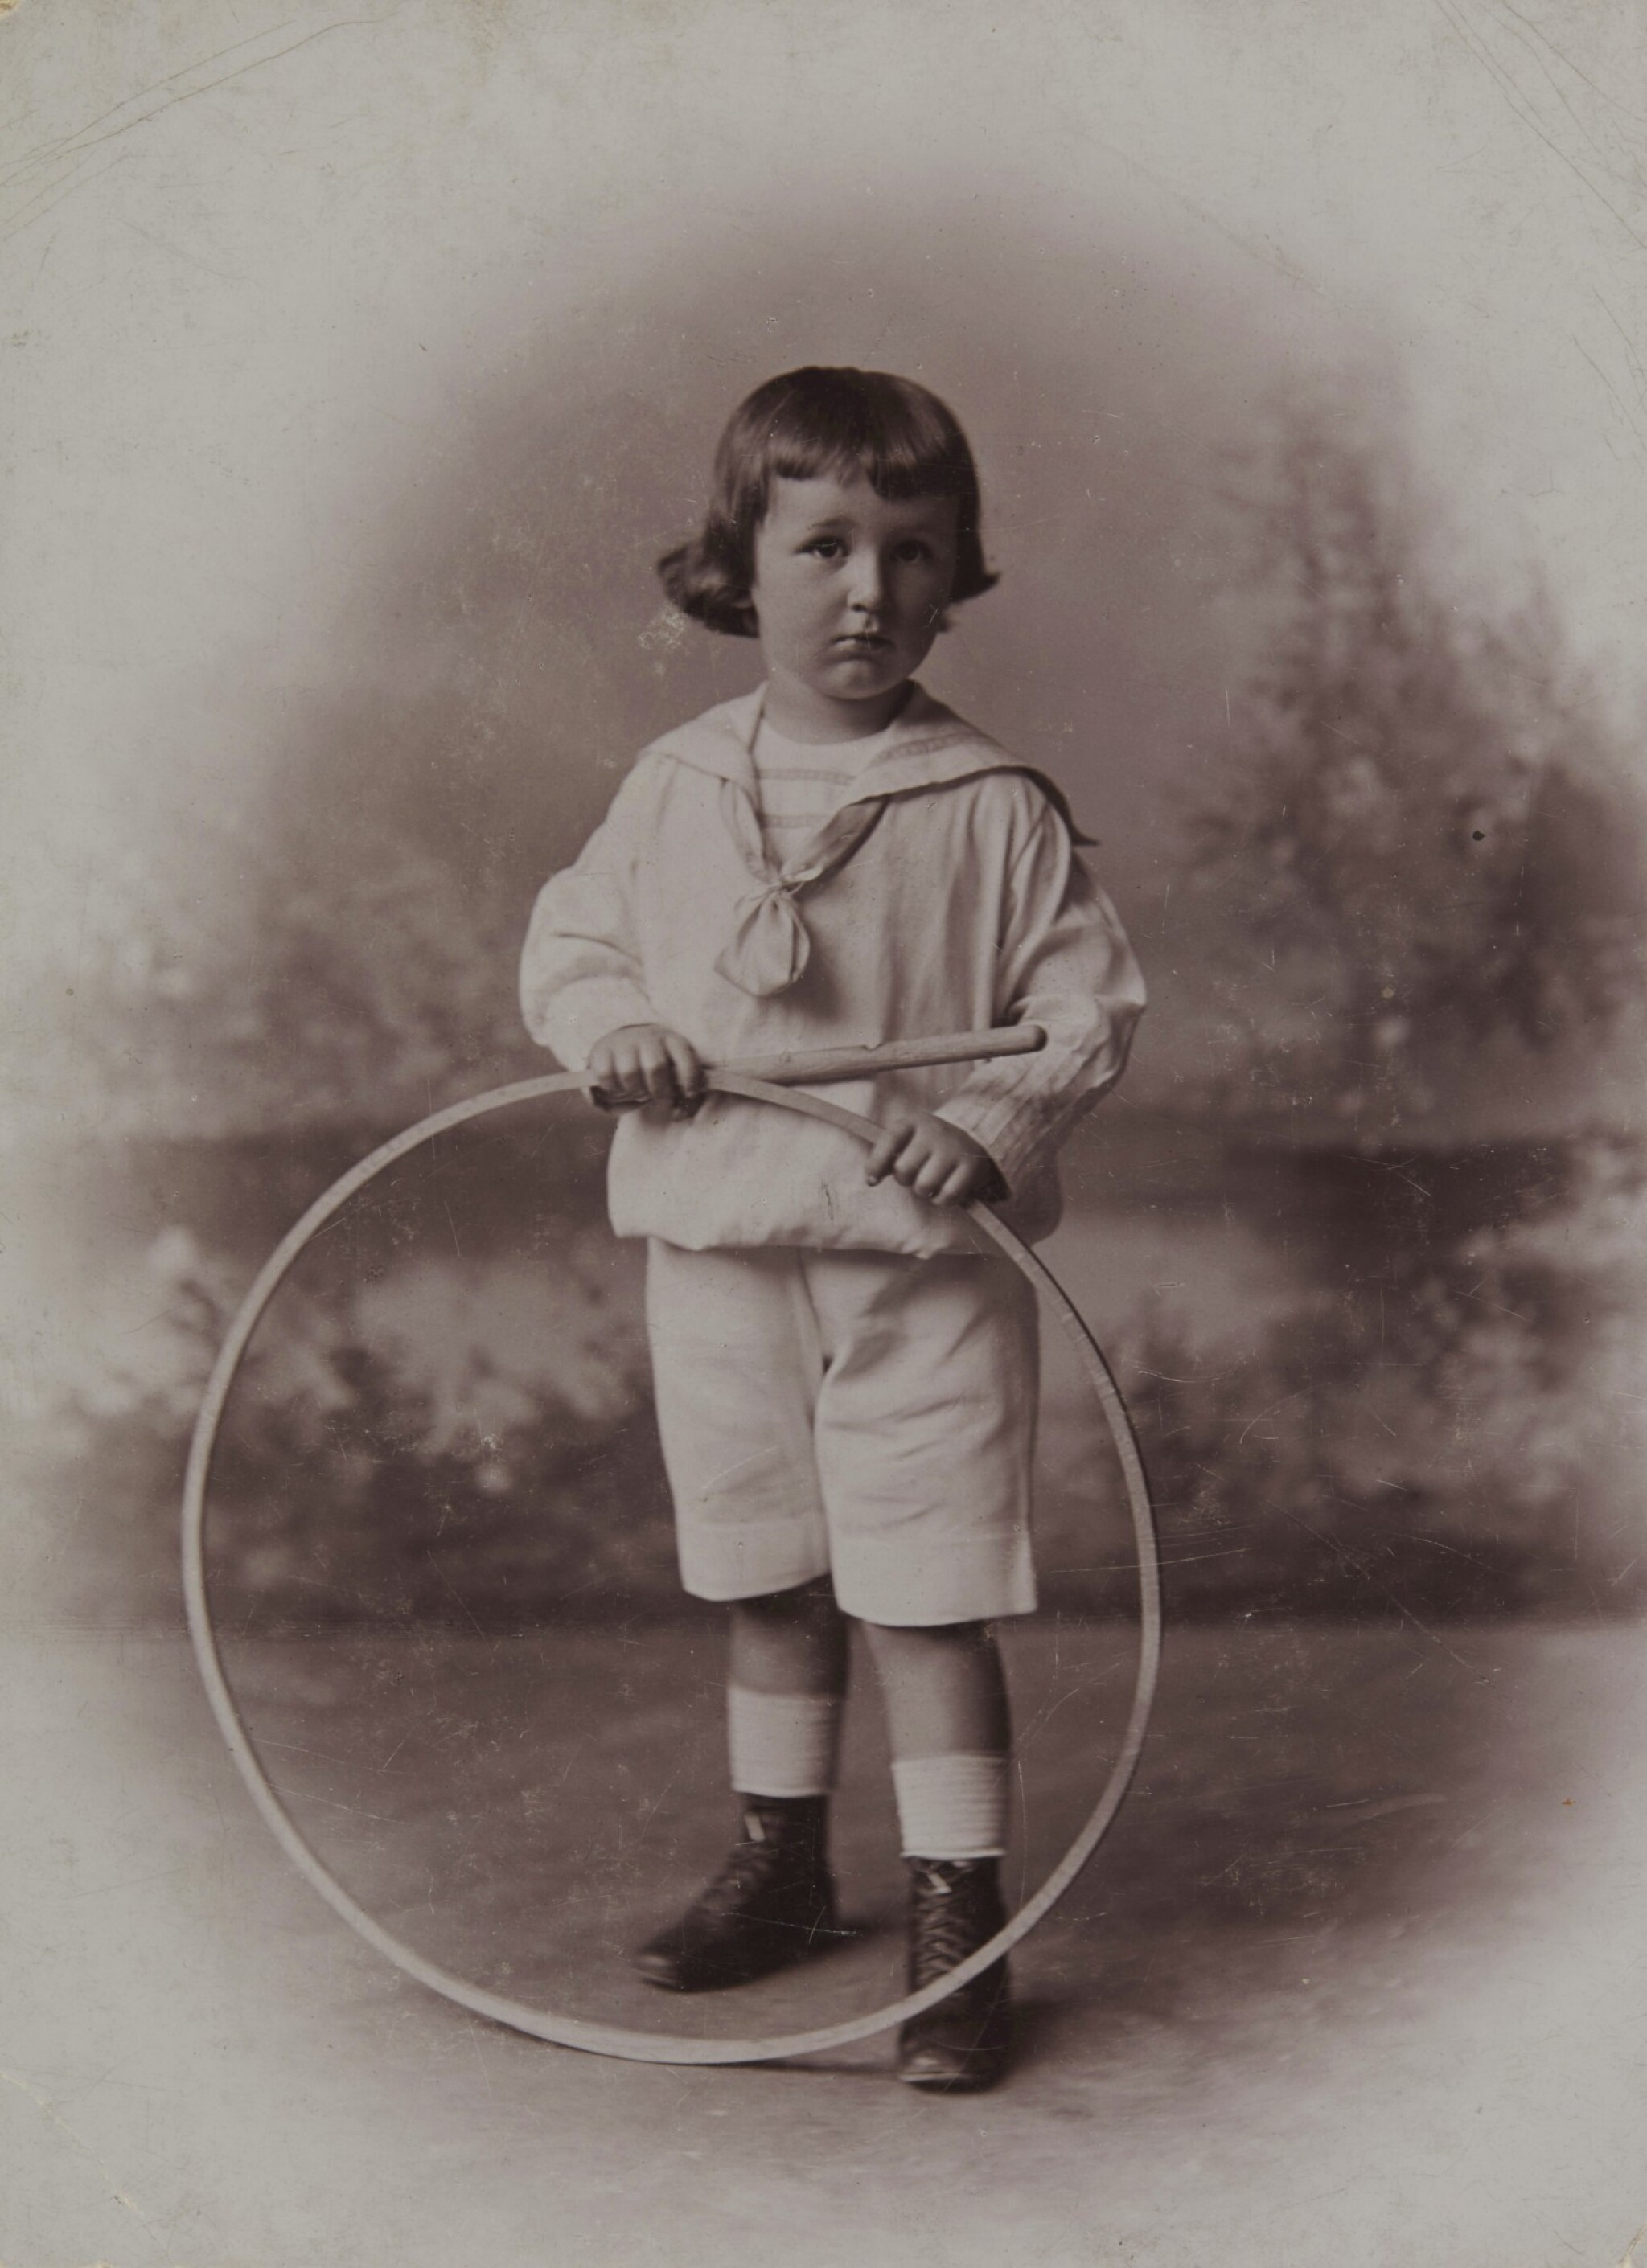 COLLECTION OF PHOTOGRAPHIC PORTRAITS OF HAYEK, FROM CHILDHOOD TO OLD AGE